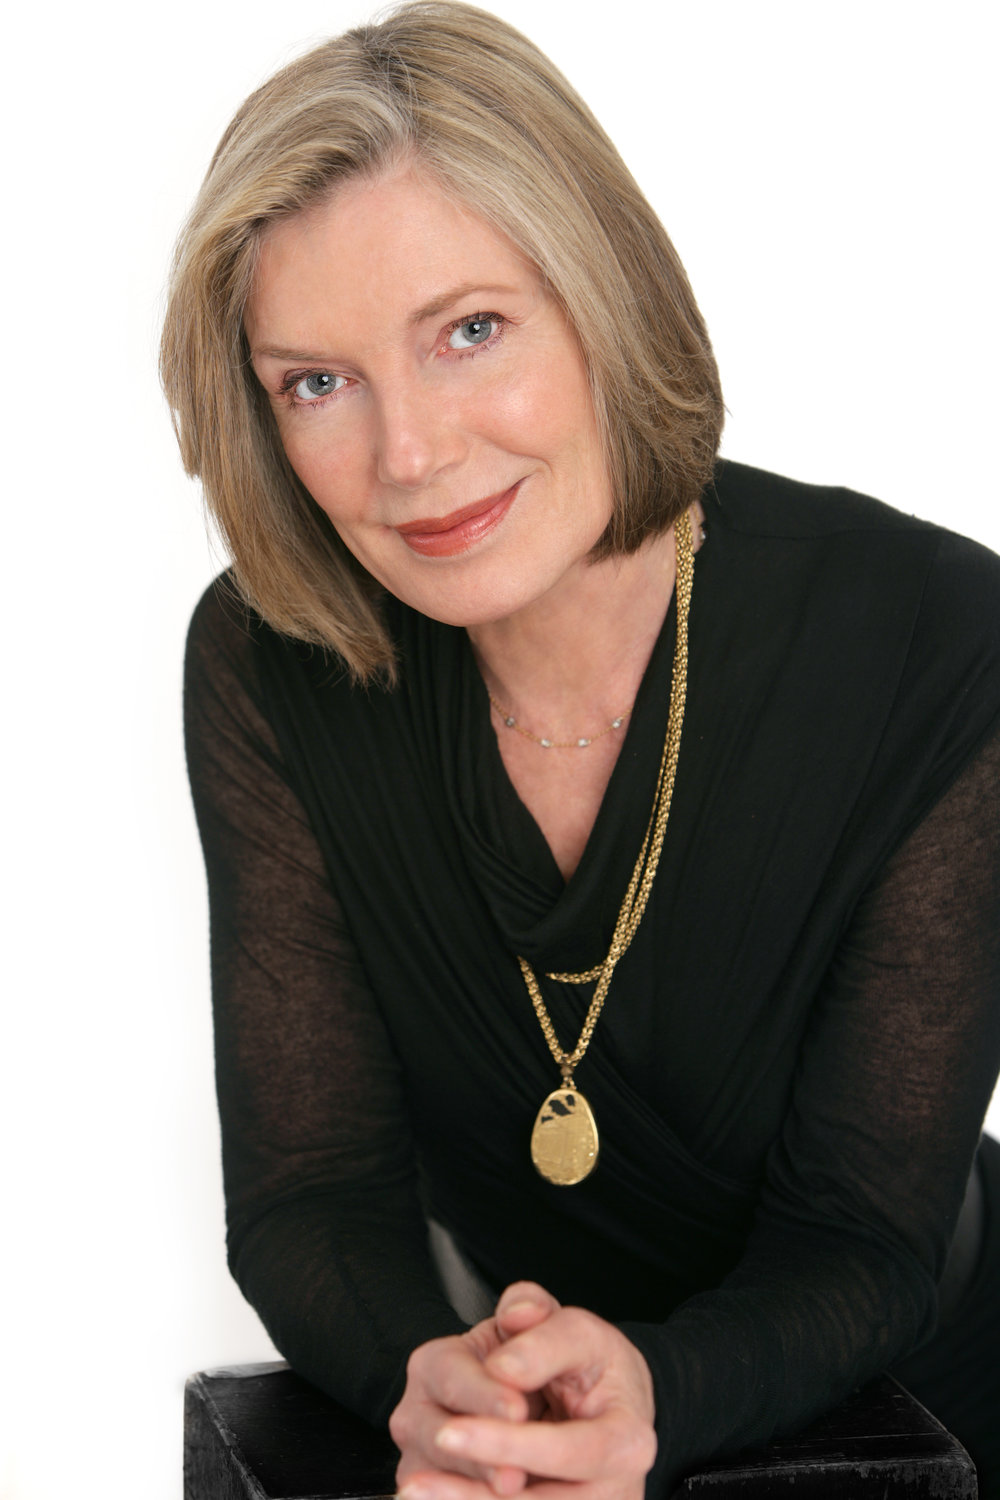 Susan Sullivan headshot by Shandon Photography